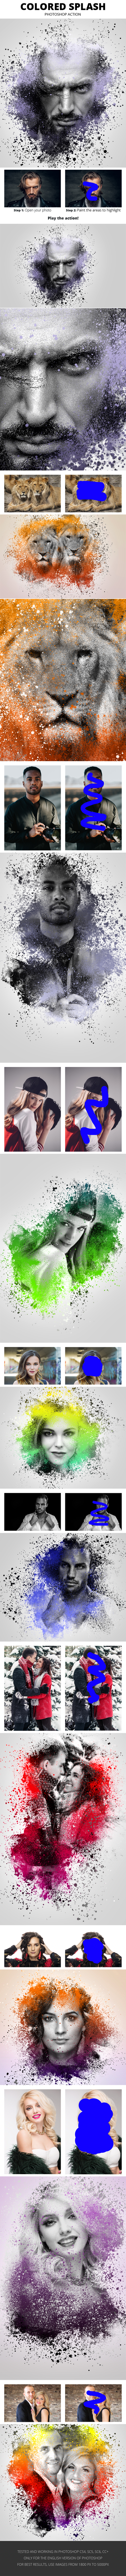 Colored Splash Photoshop Action - Photo Effects Actions